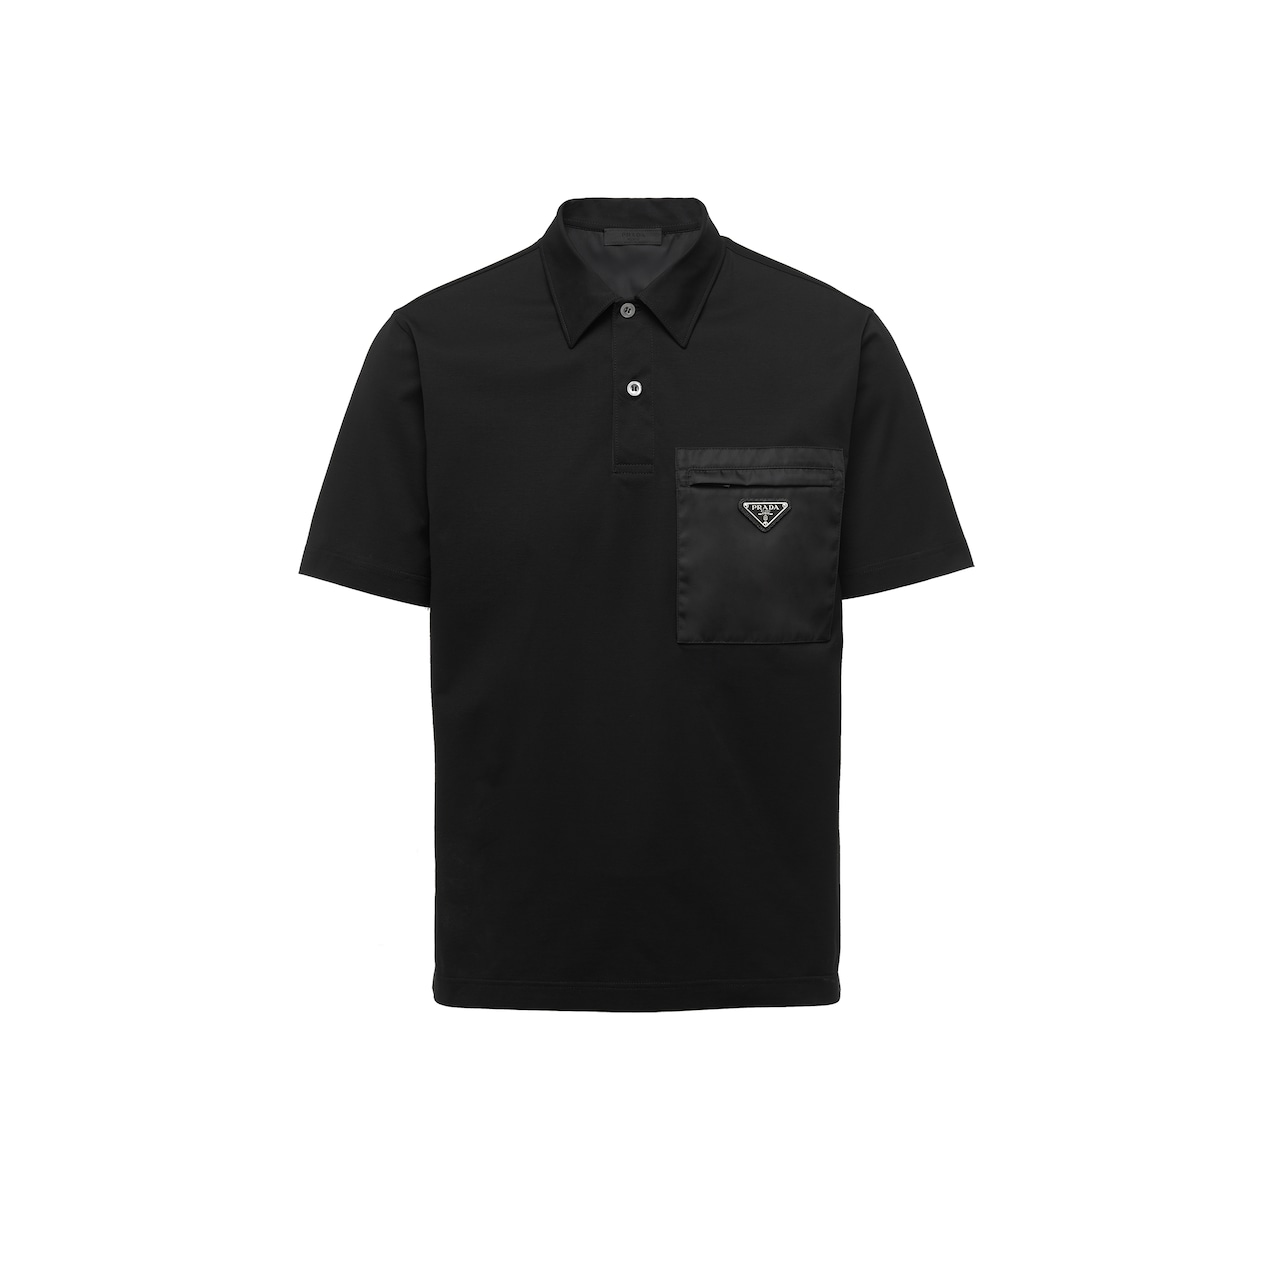 Short-sleeved stretch cotton polo shirt